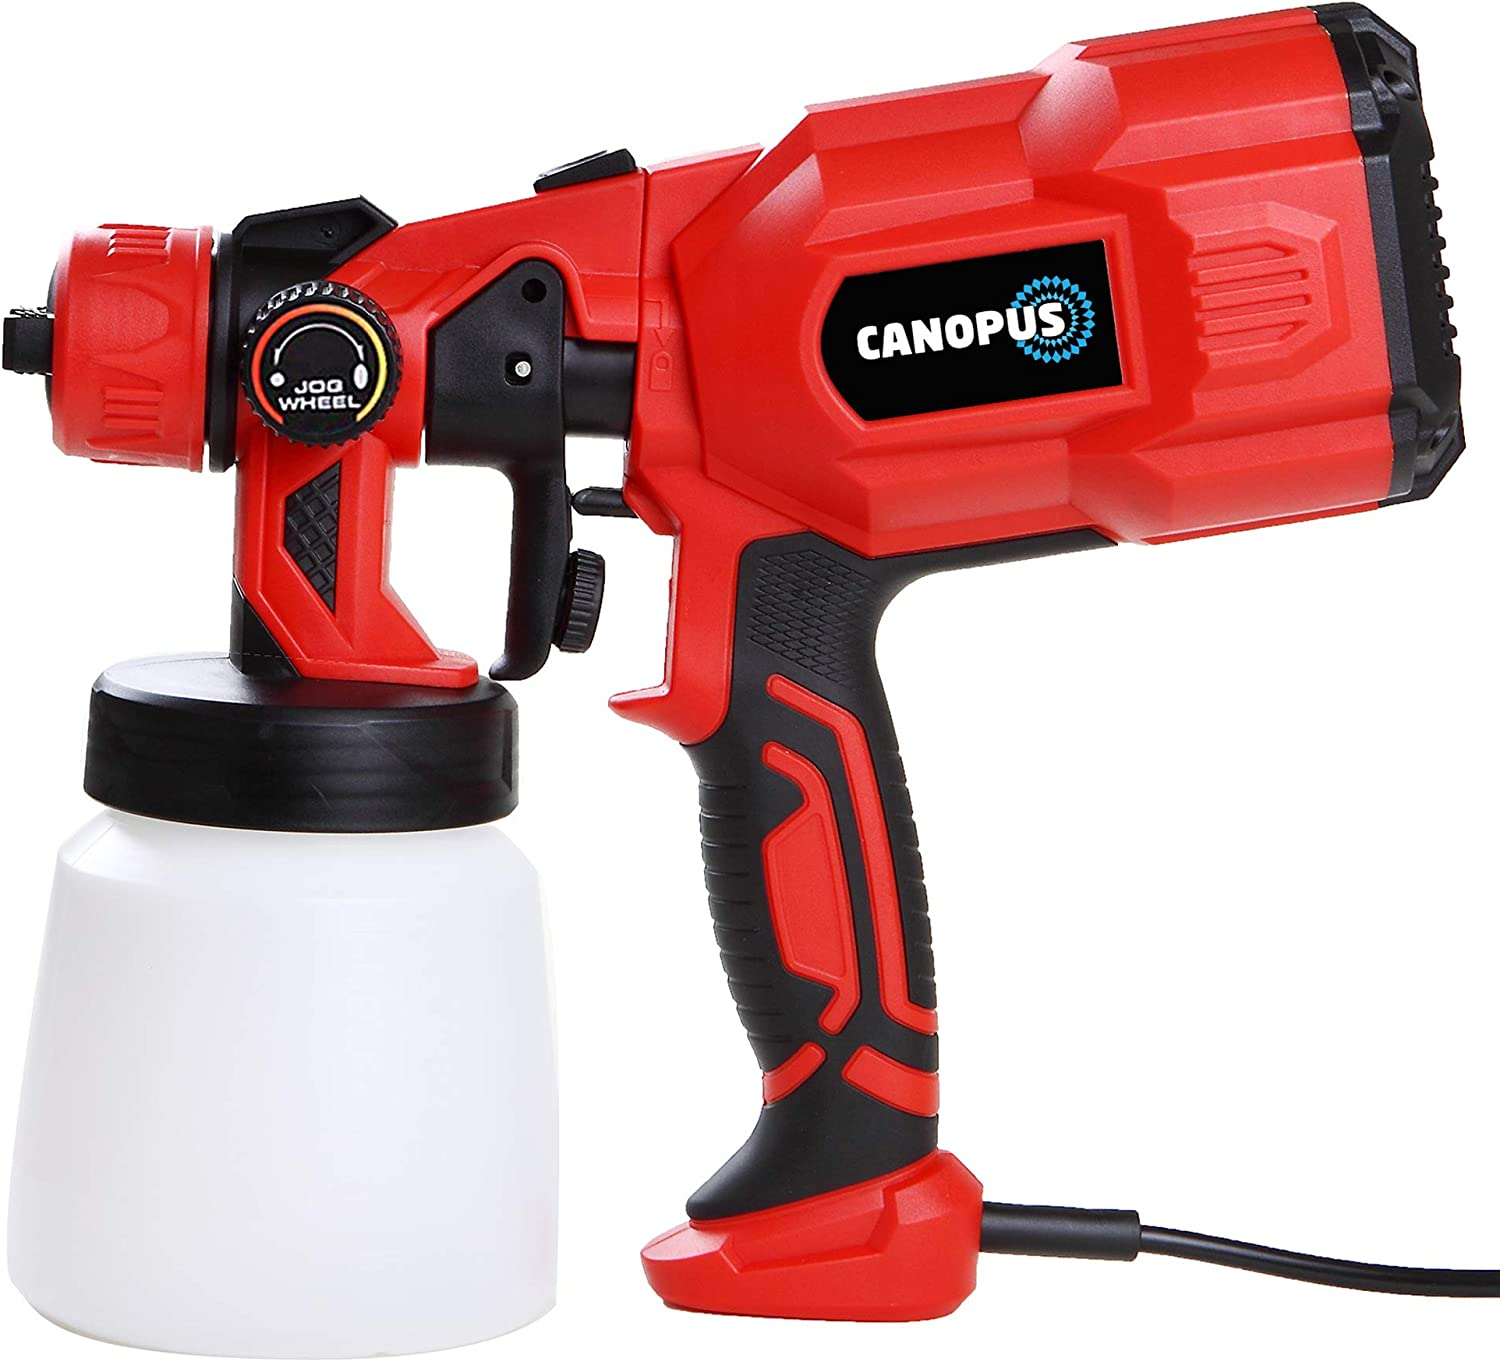 CANOPUS Paint Sprayer, Electric Airless Paint Sprayer, 550W, Portable, HVLP Type Wide Adjustable, Anti-Corrosion Sprayer, For Painting Cars, Walls, Furniture and Other DIY Projects